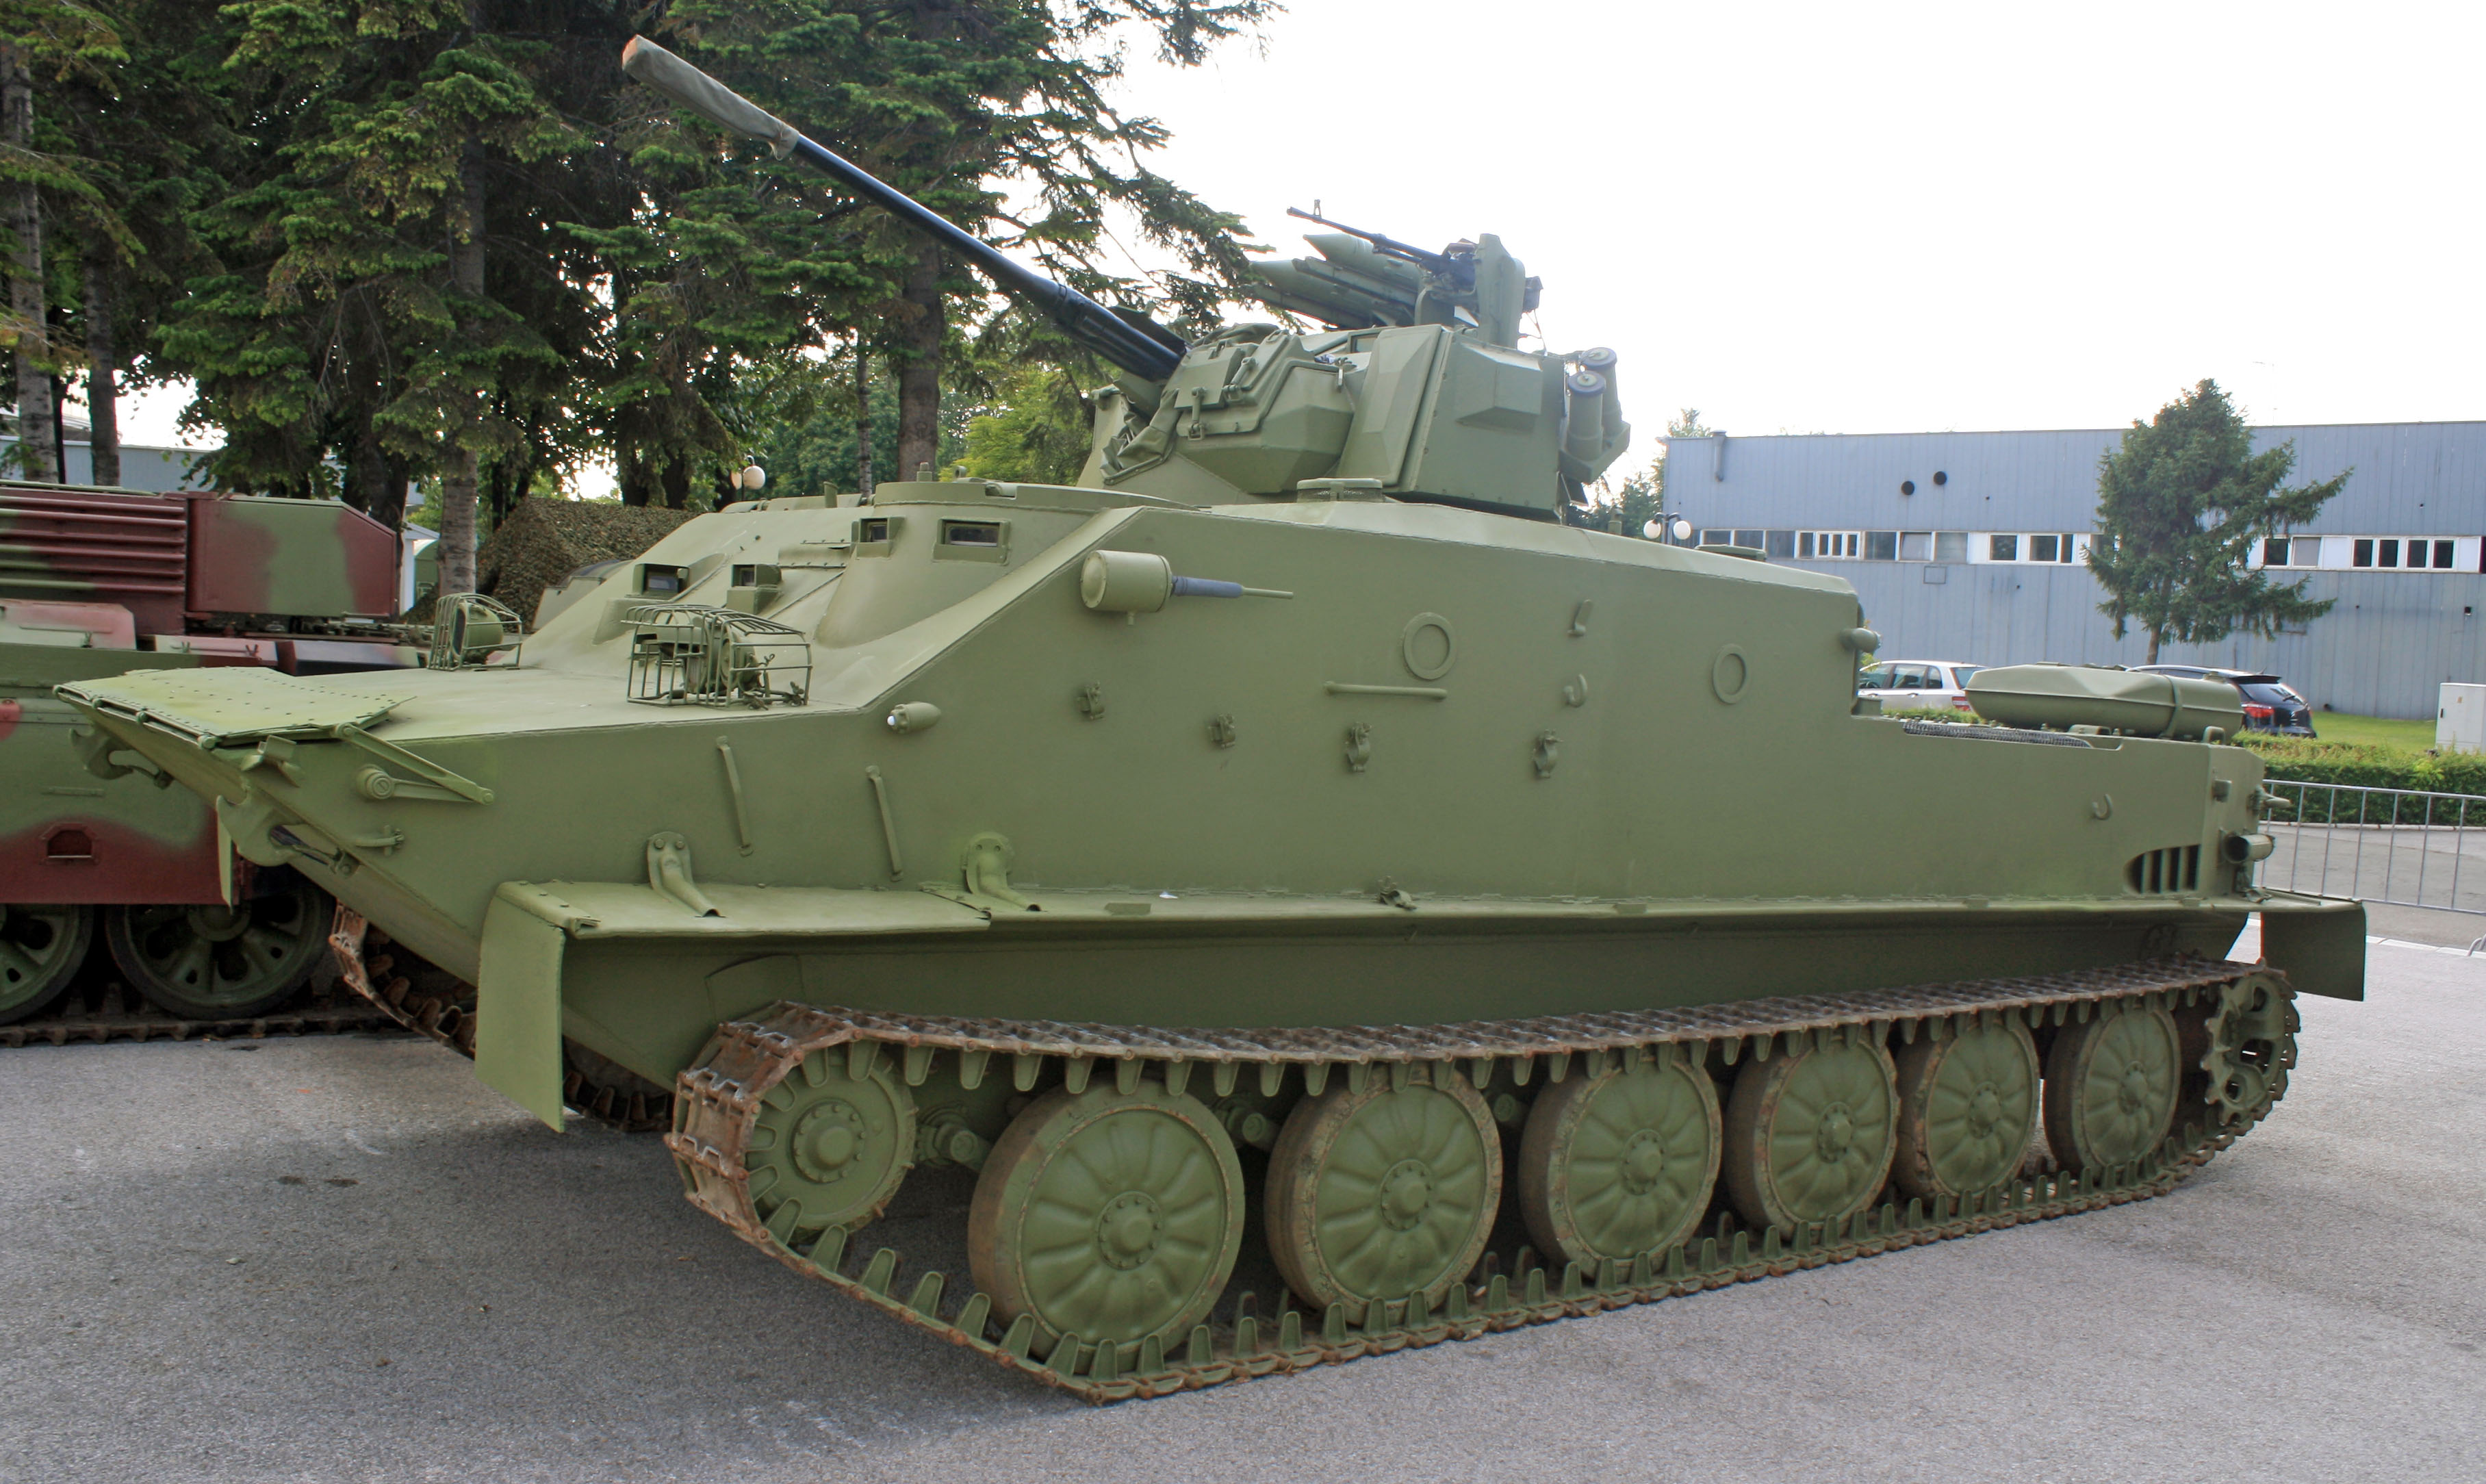 https://upload.wikimedia.org/wikipedia/commons/4/43/BTR-50S_2.jpg